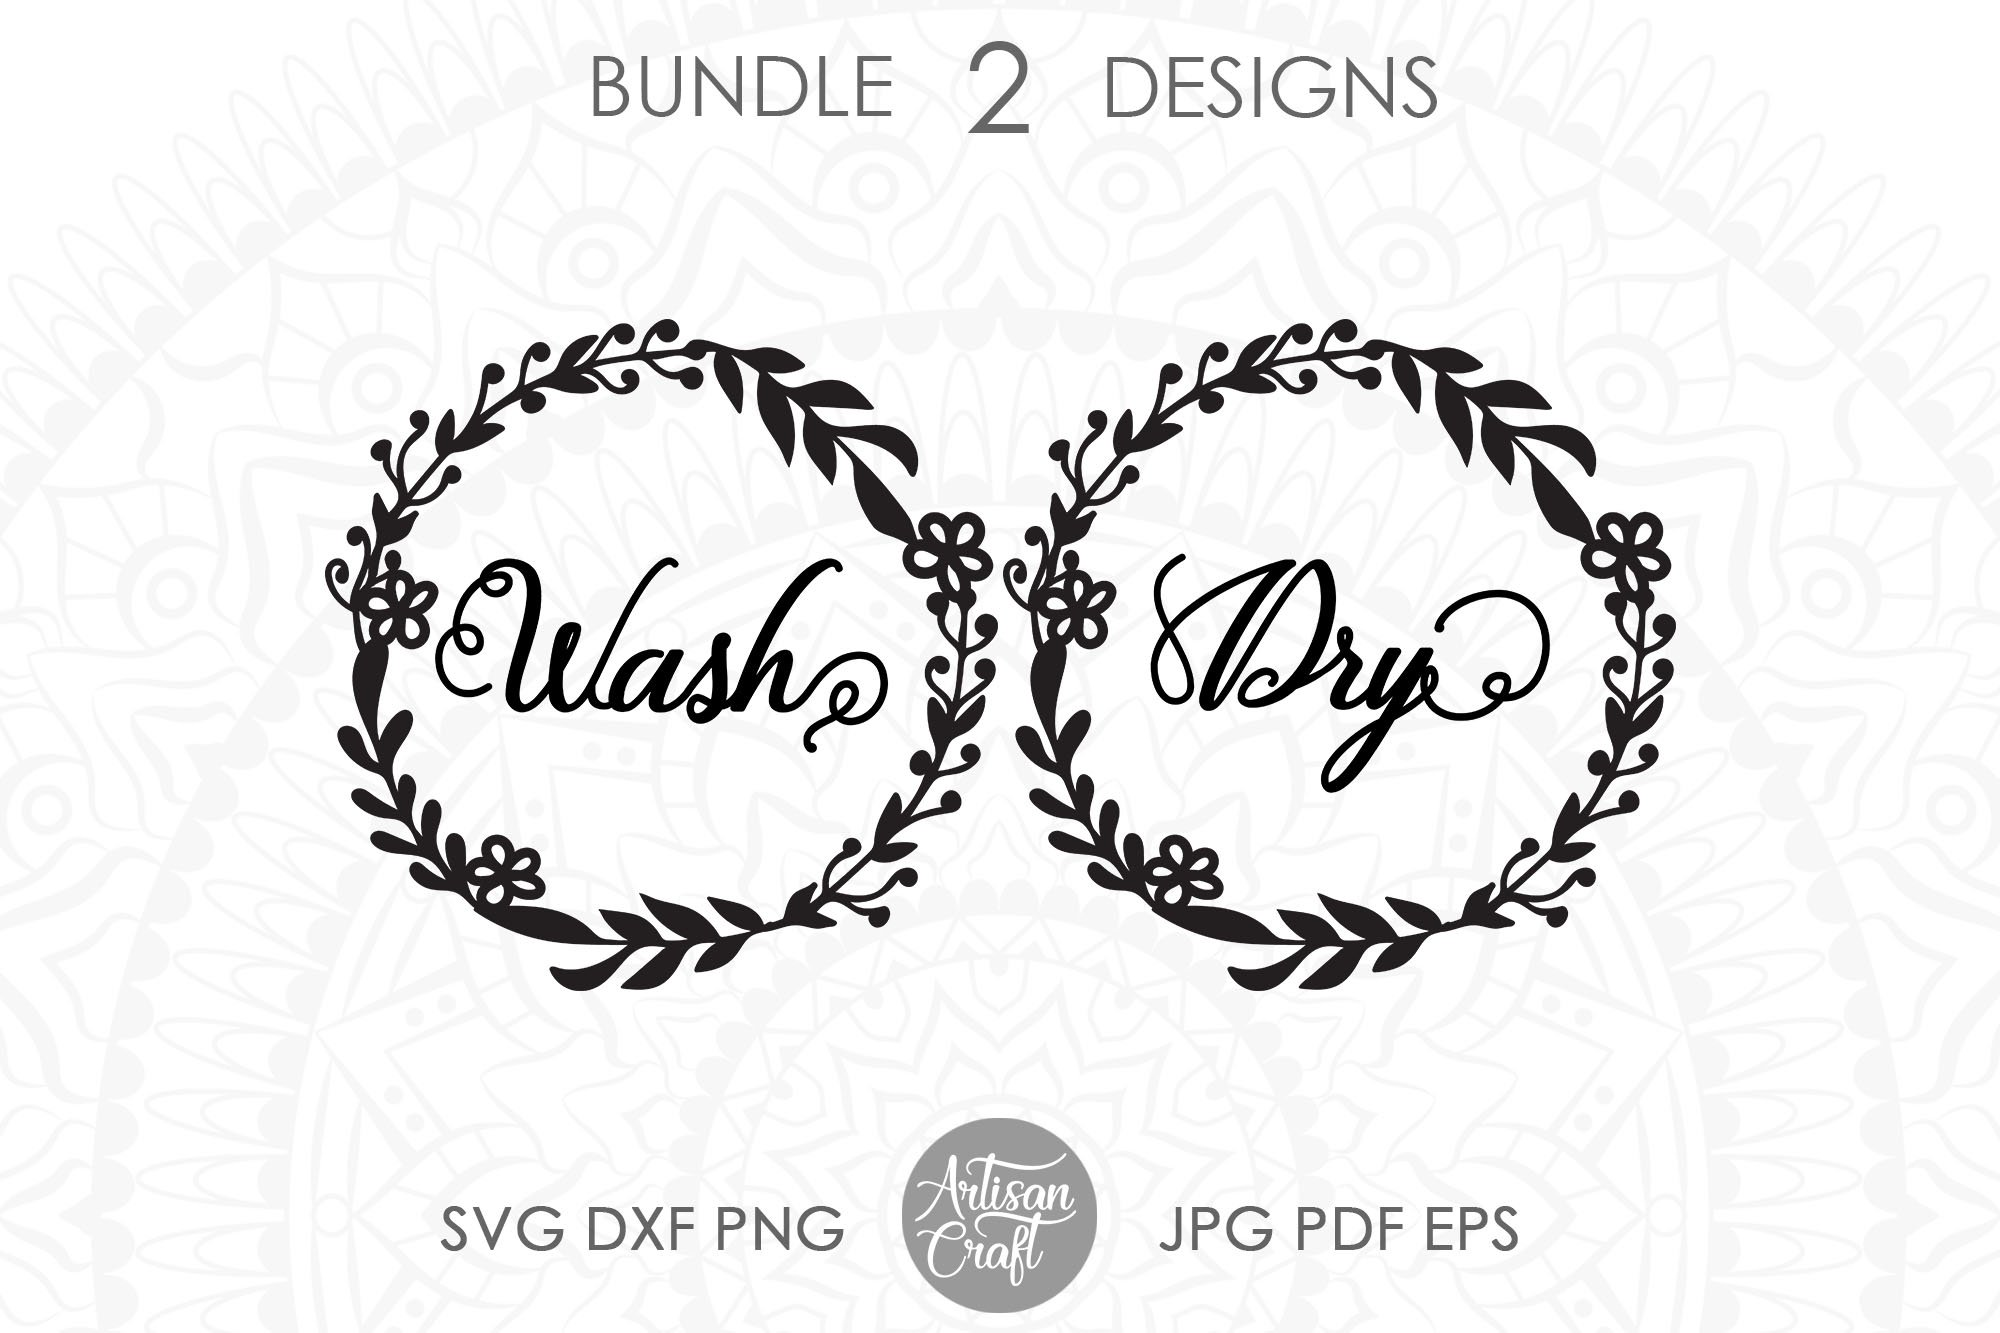 Wash dry svg, washer dryer decals, floral wreath png example image 1